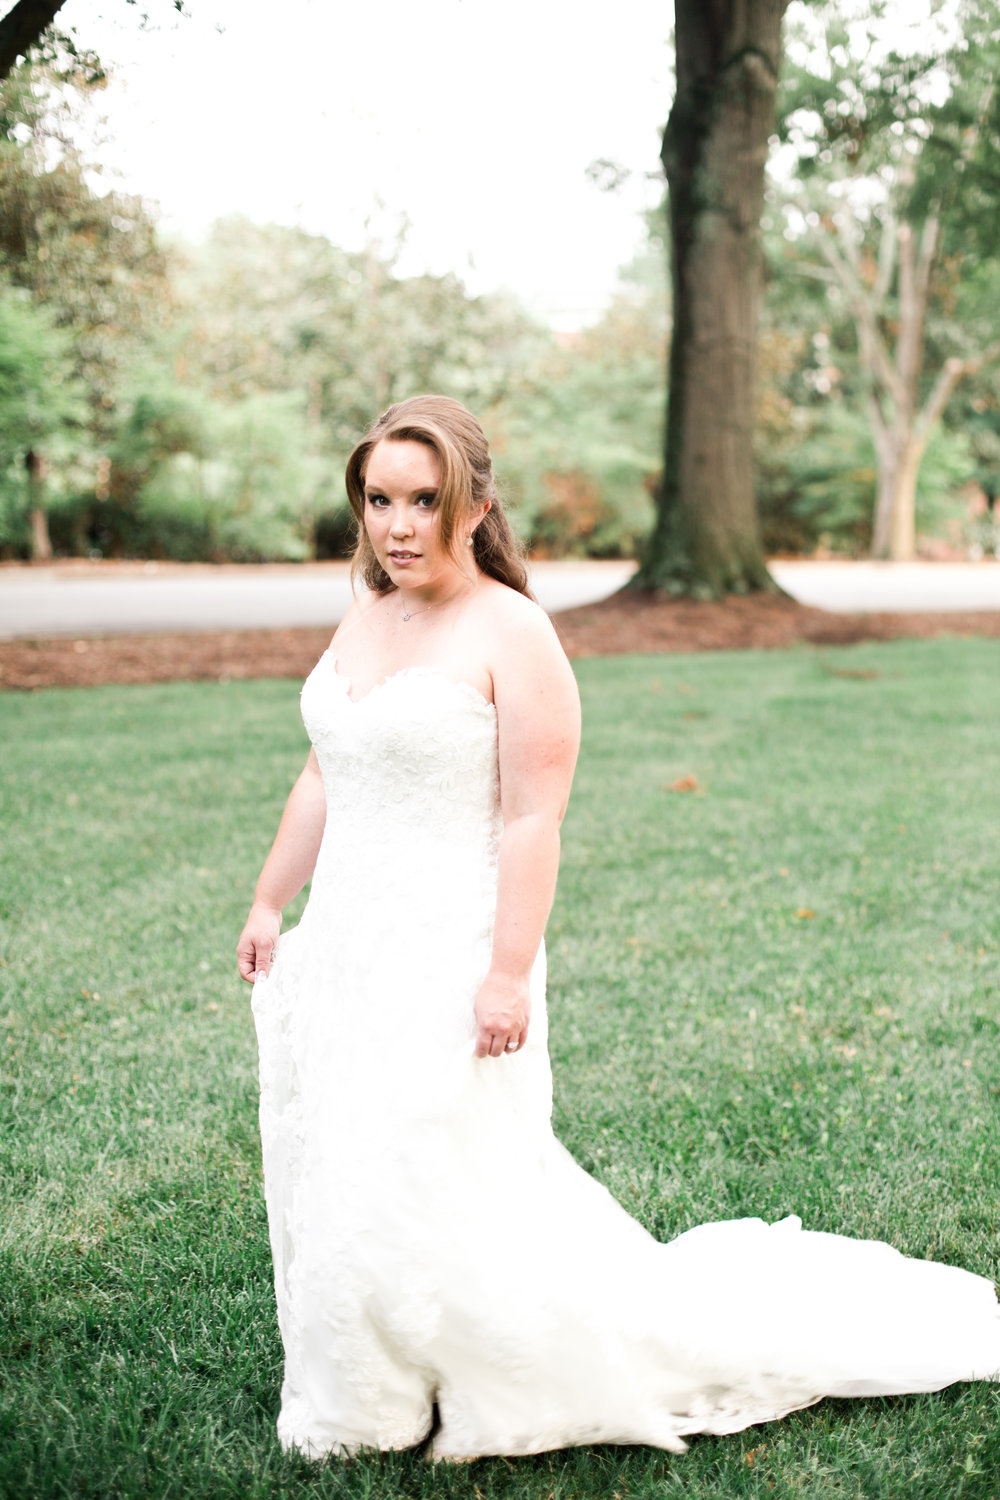 gabbie_bridal_poured_out_photography-42.jpg